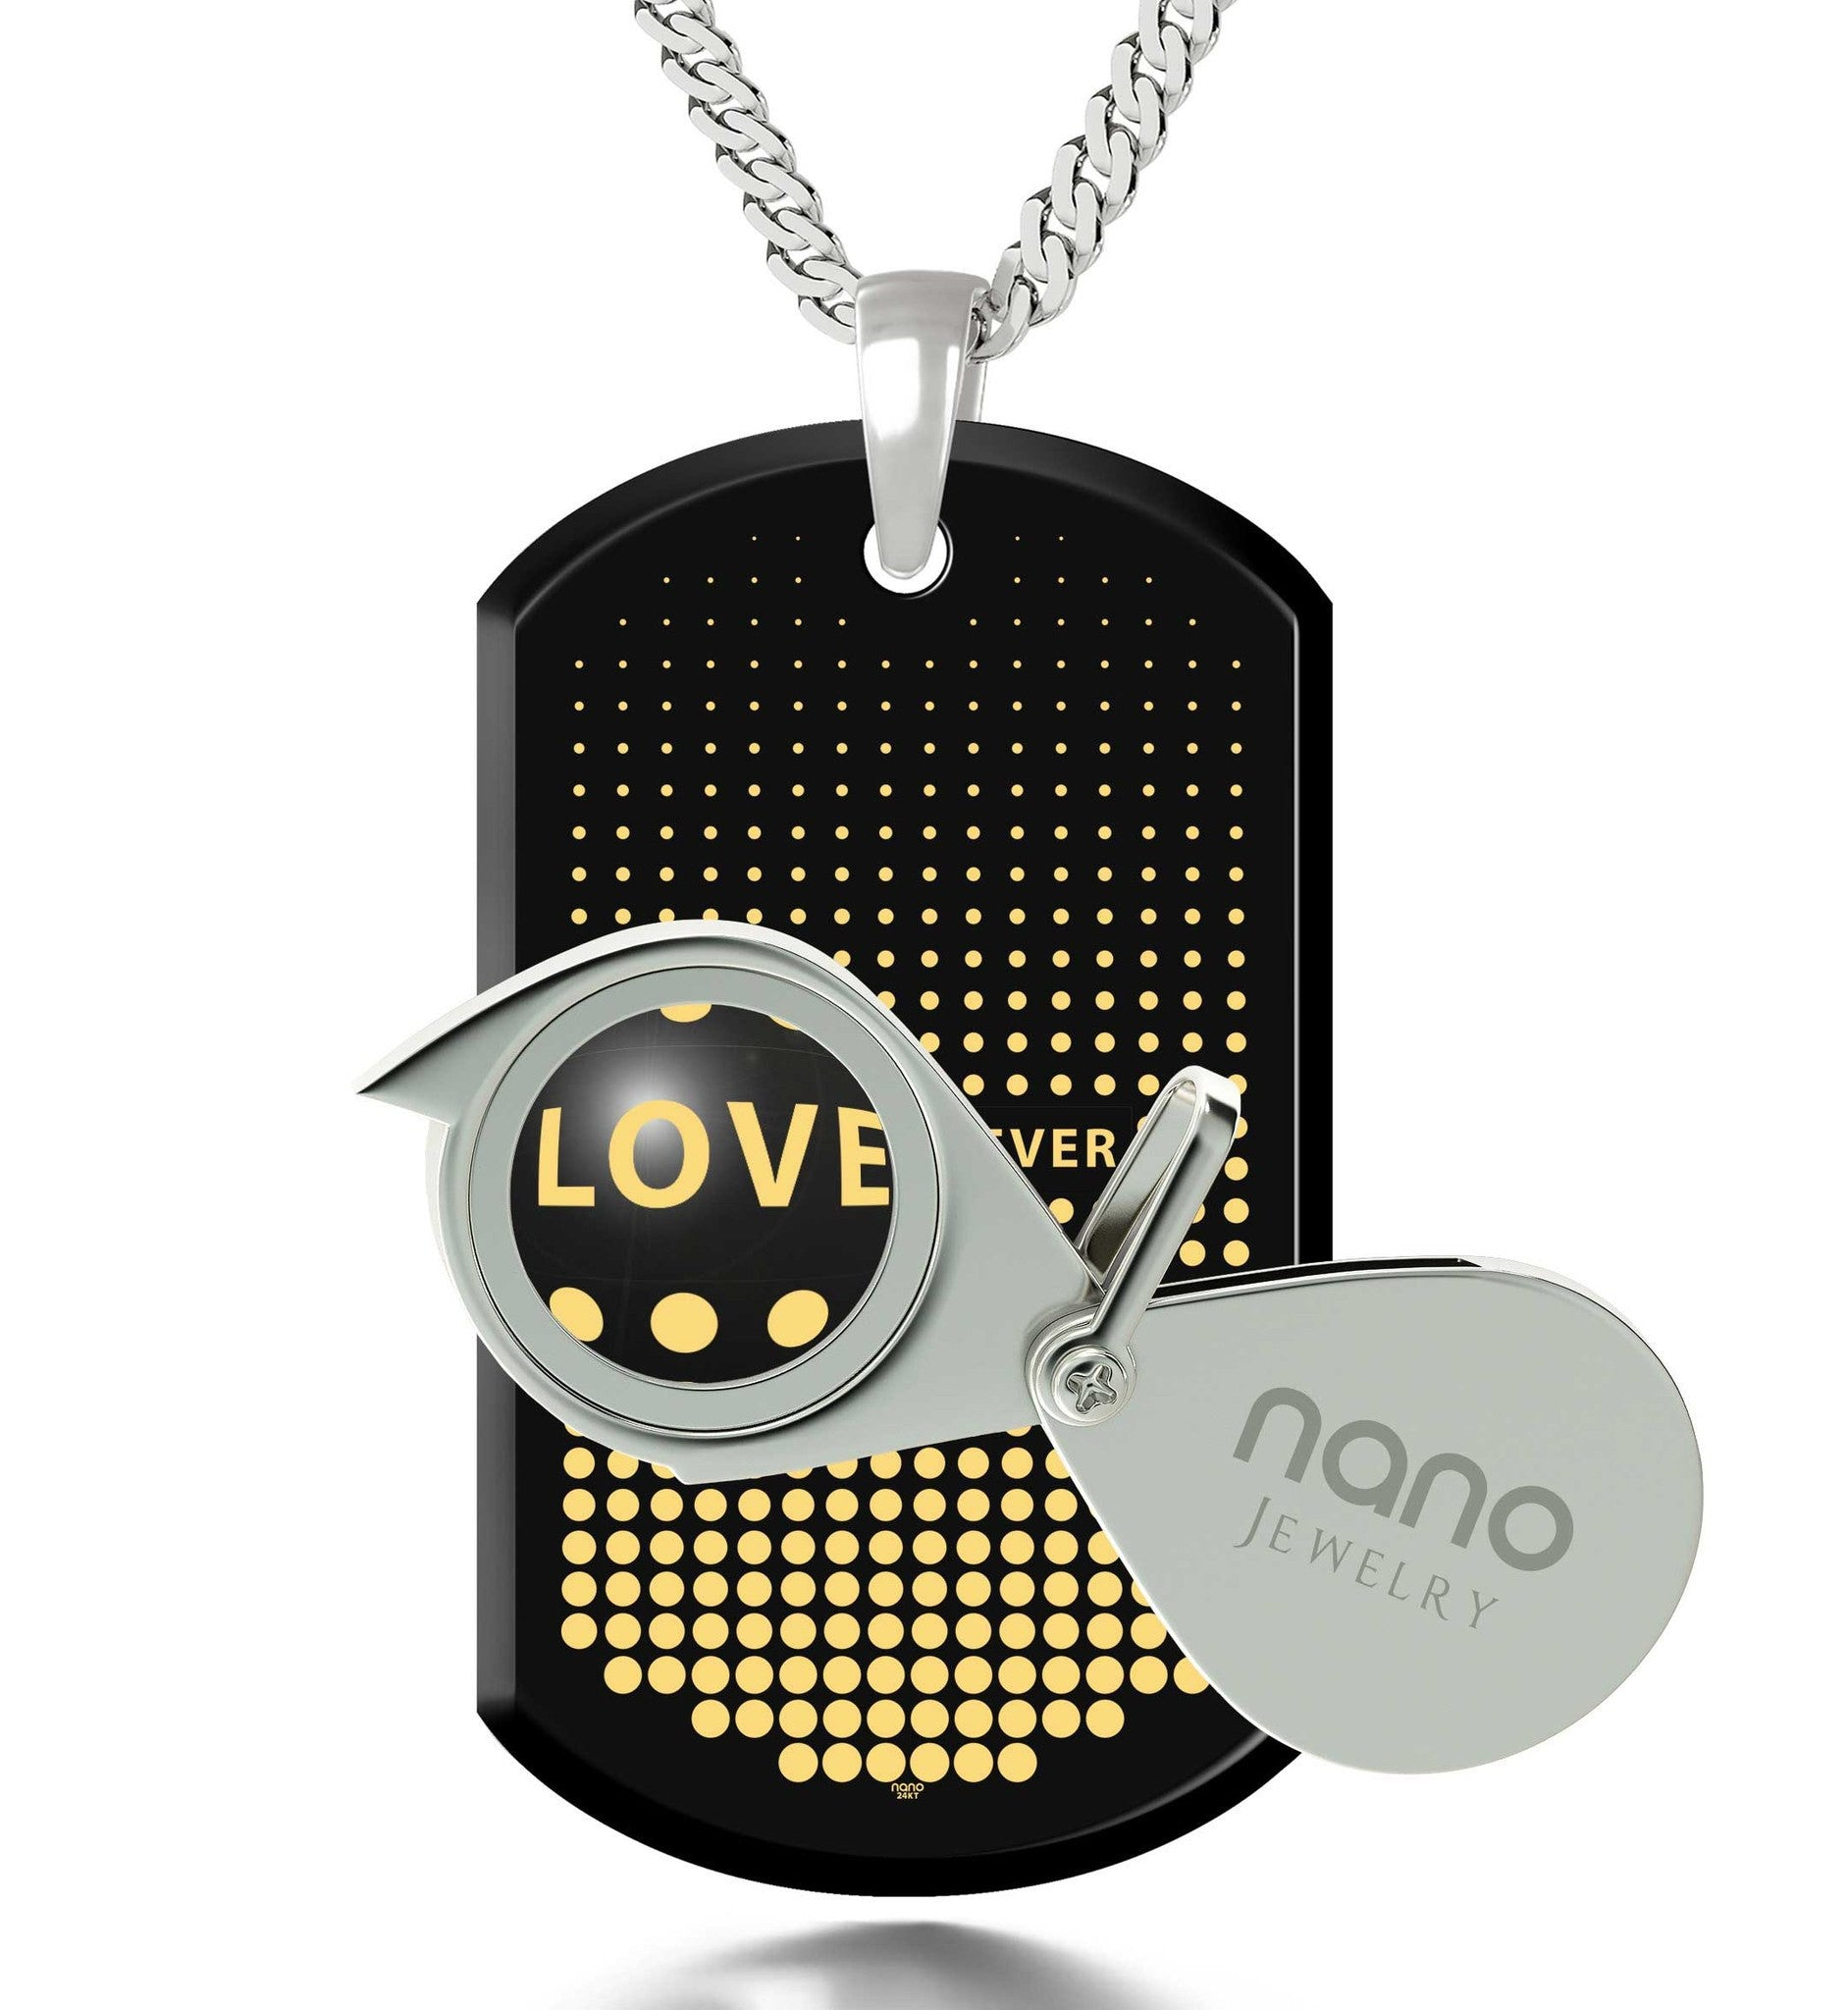 Husband Valentines Gift, Silver Chain with Love Forever Engraved Pendant, What to Get Your Boyfriend for His Birthday